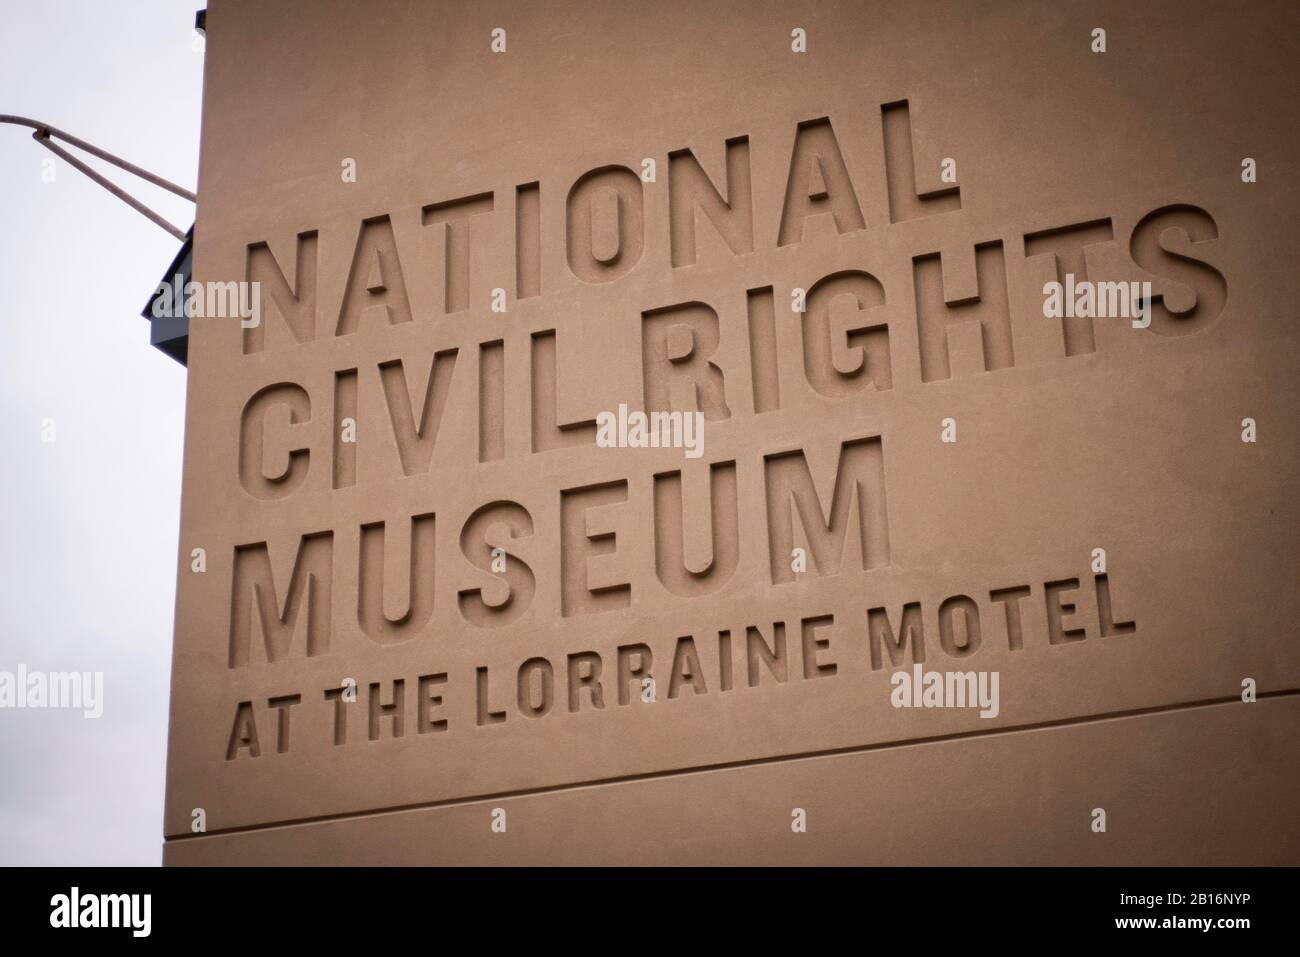 Memphis, Tennessee - January 27, 2020: National Civil Rights Museum logo at the Lorraine Motel, location of MLK assassination Stock Photo